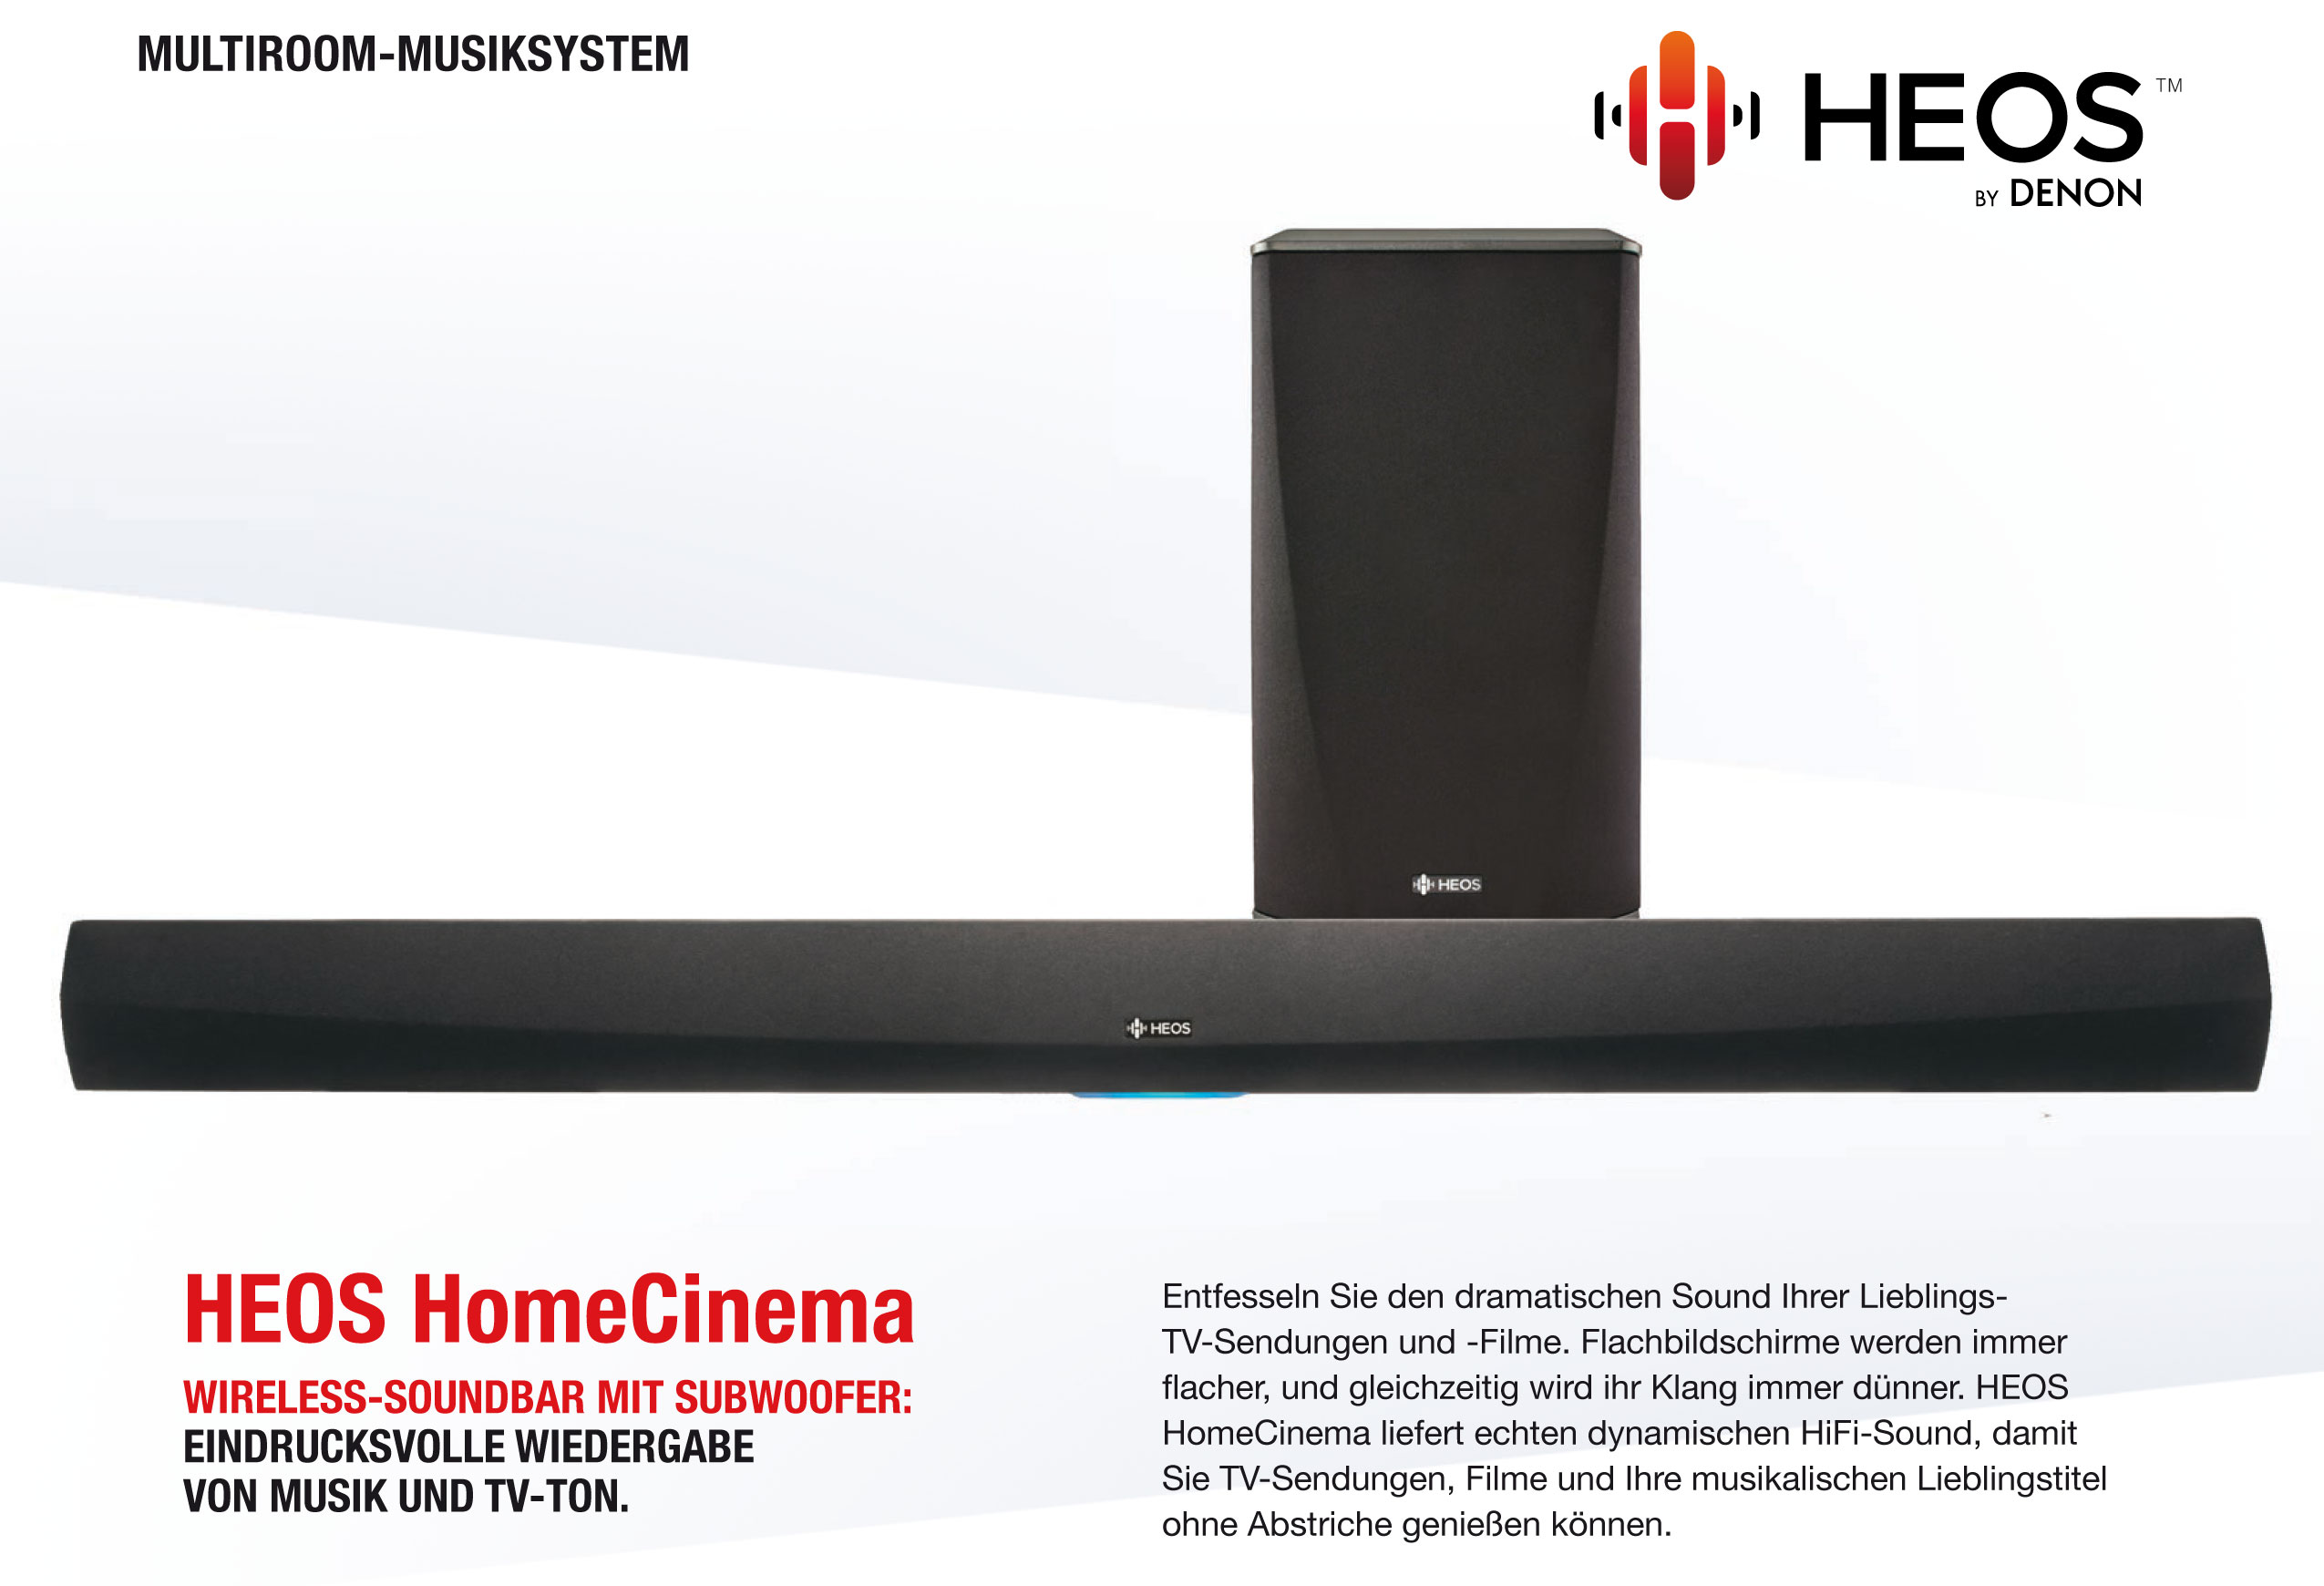 HEOS HomeCinema by Denon